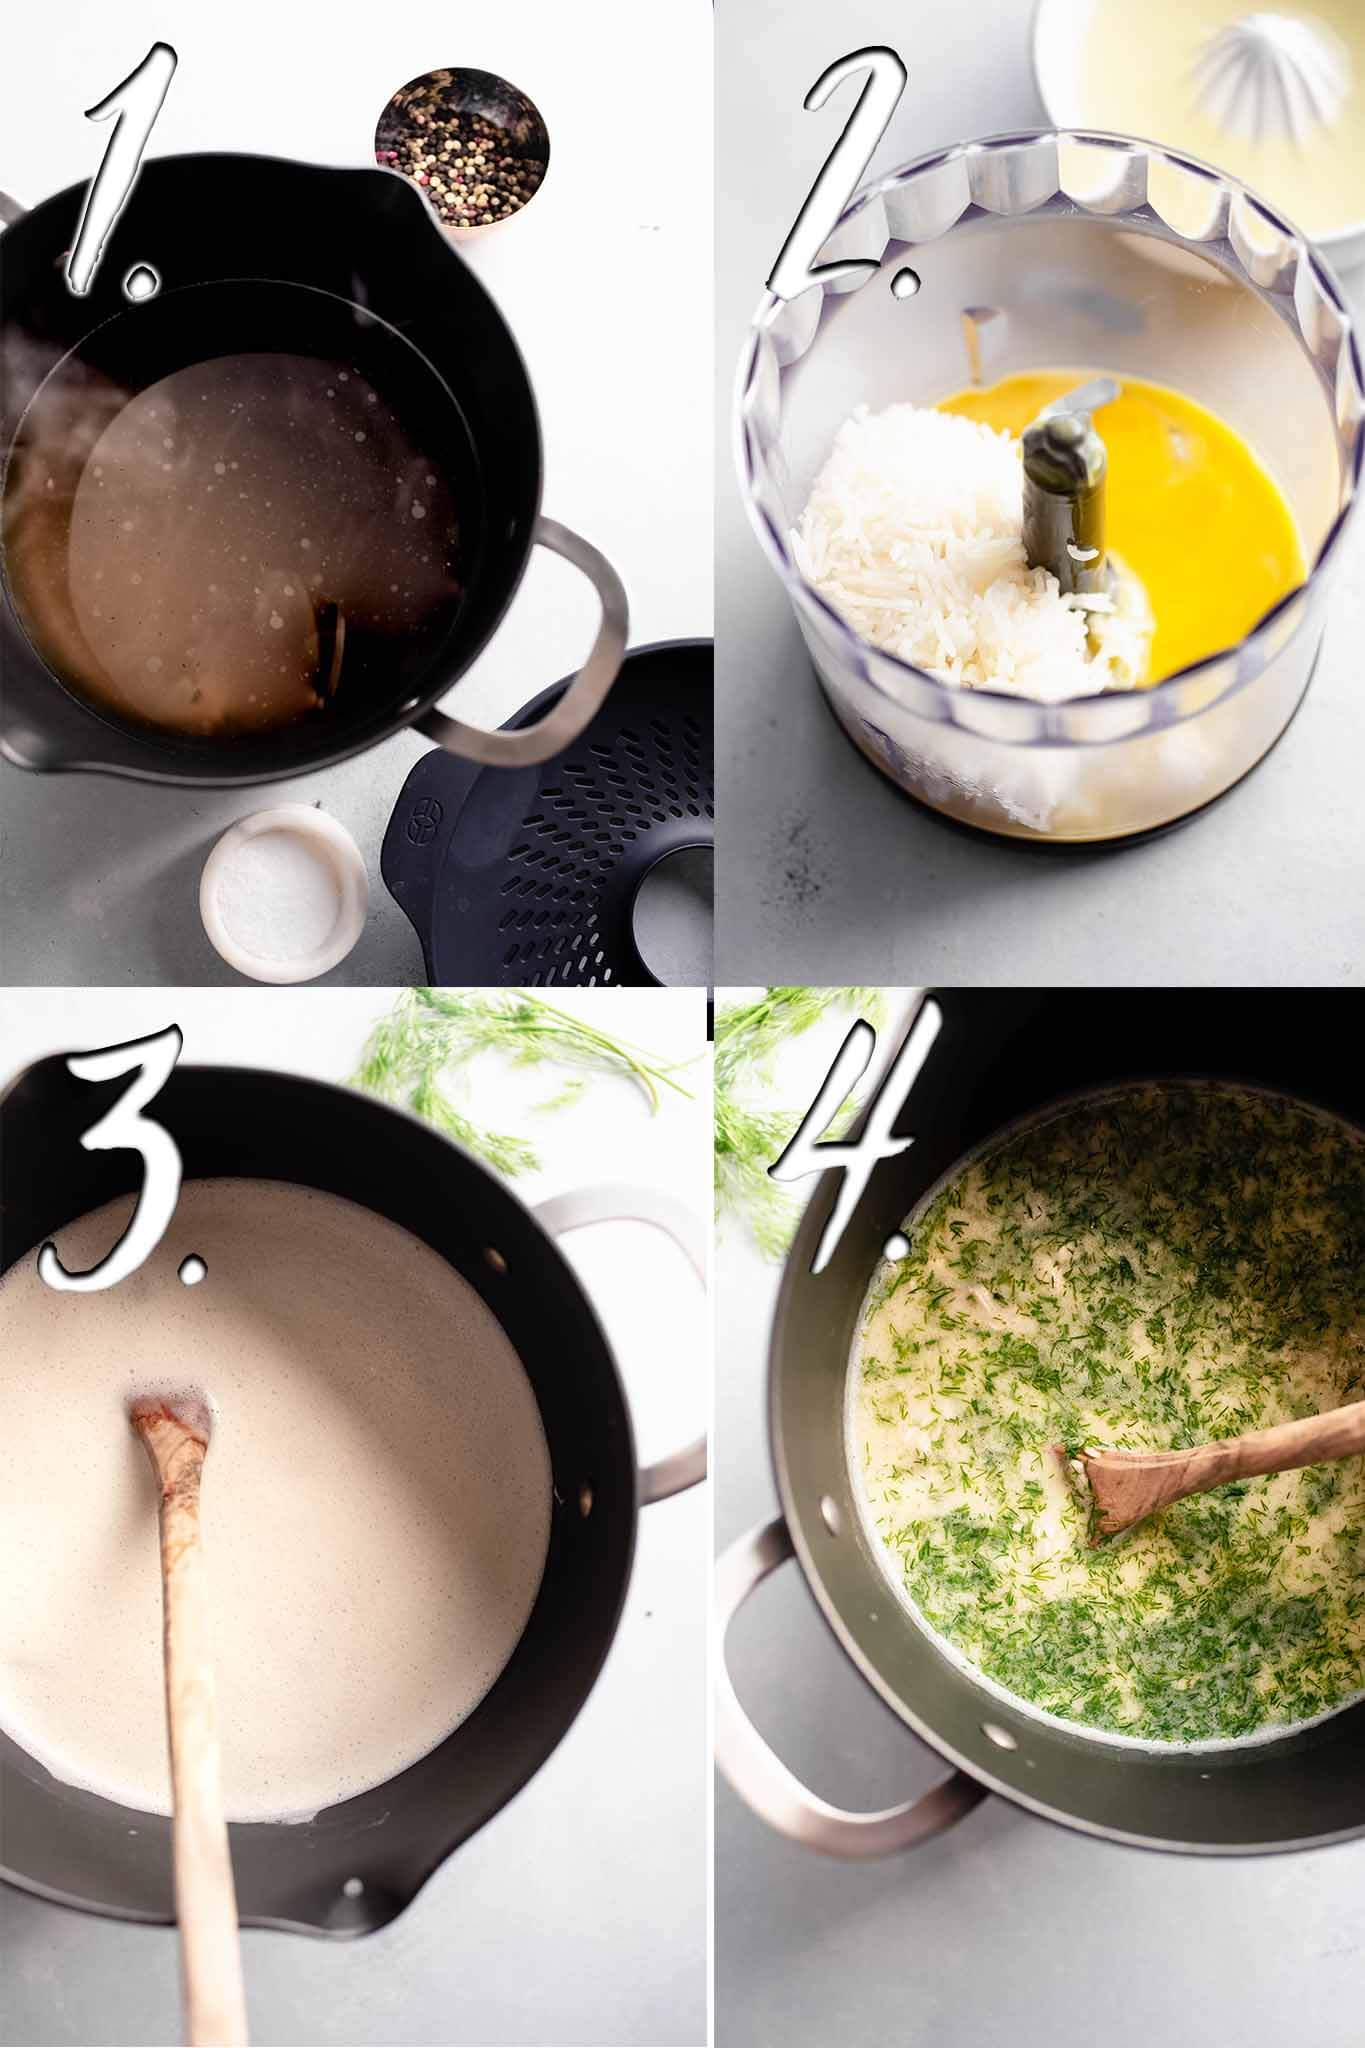 Steps for making avgolemono.